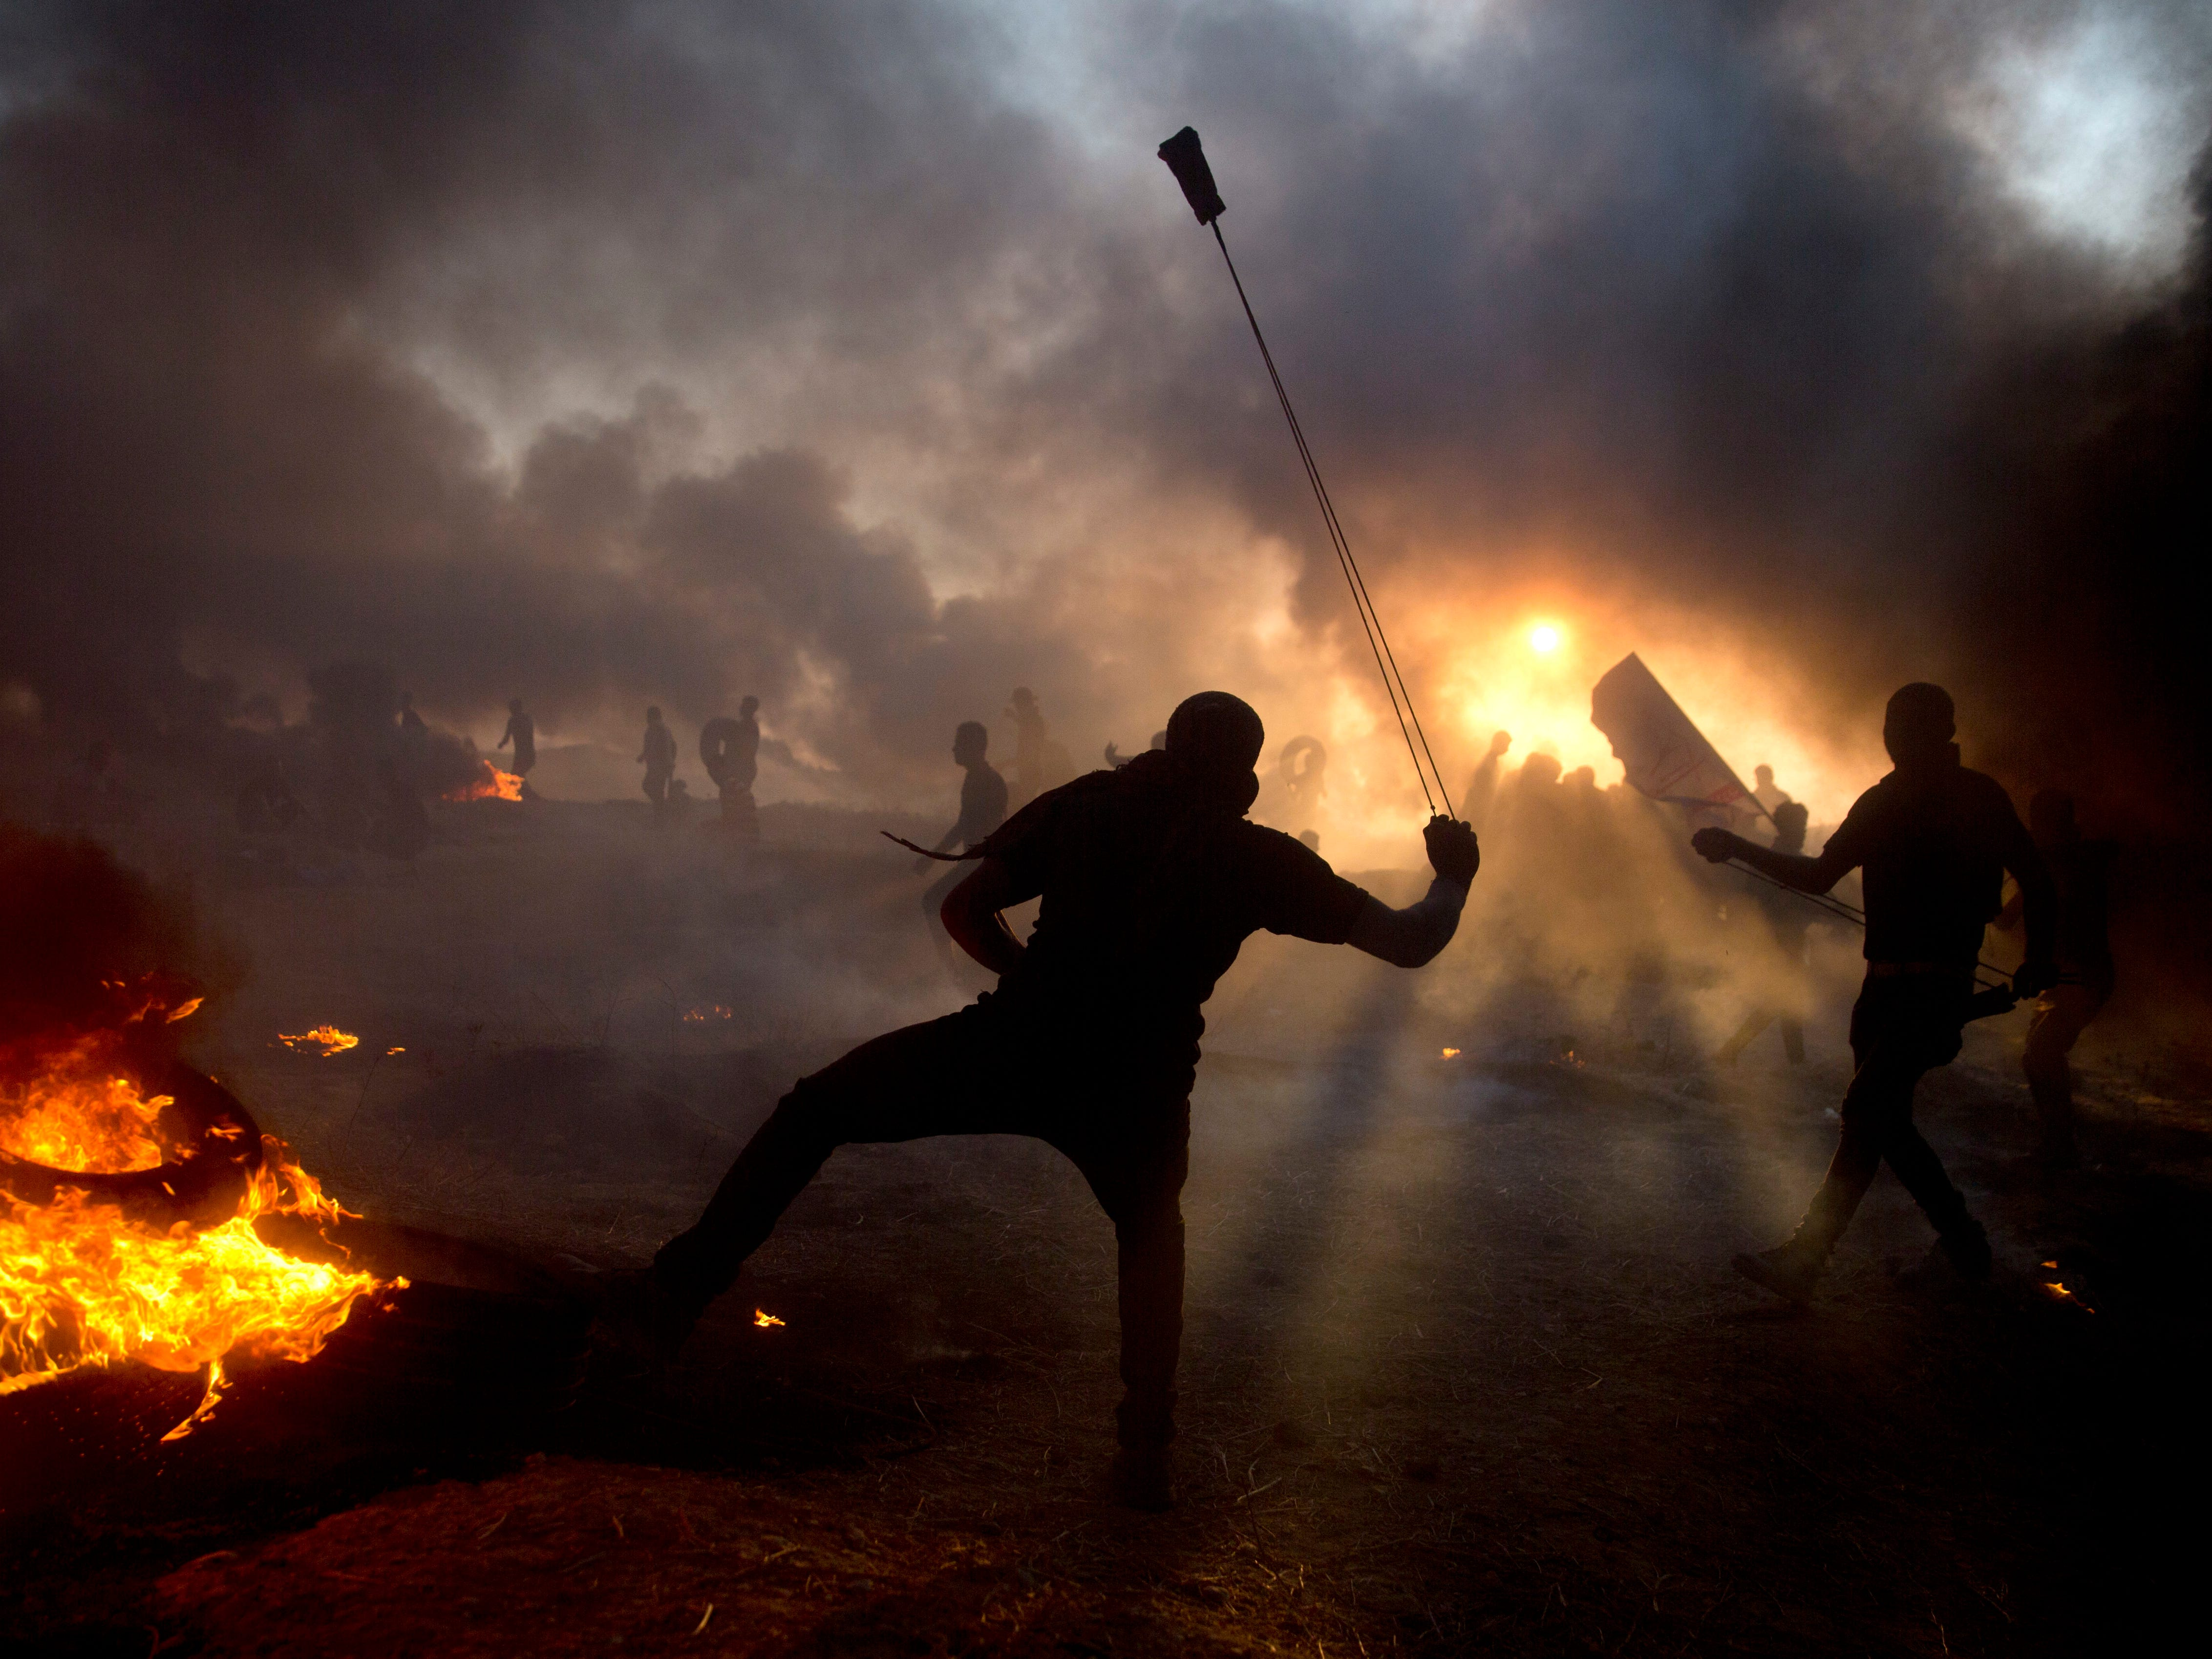 Black smoke from burning tires covers the sky as Palestinian protesters hurl stones toward Israeli troops during a protest at the Gaza Strip's border with Israel, Friday, Oct. 12, 2018.